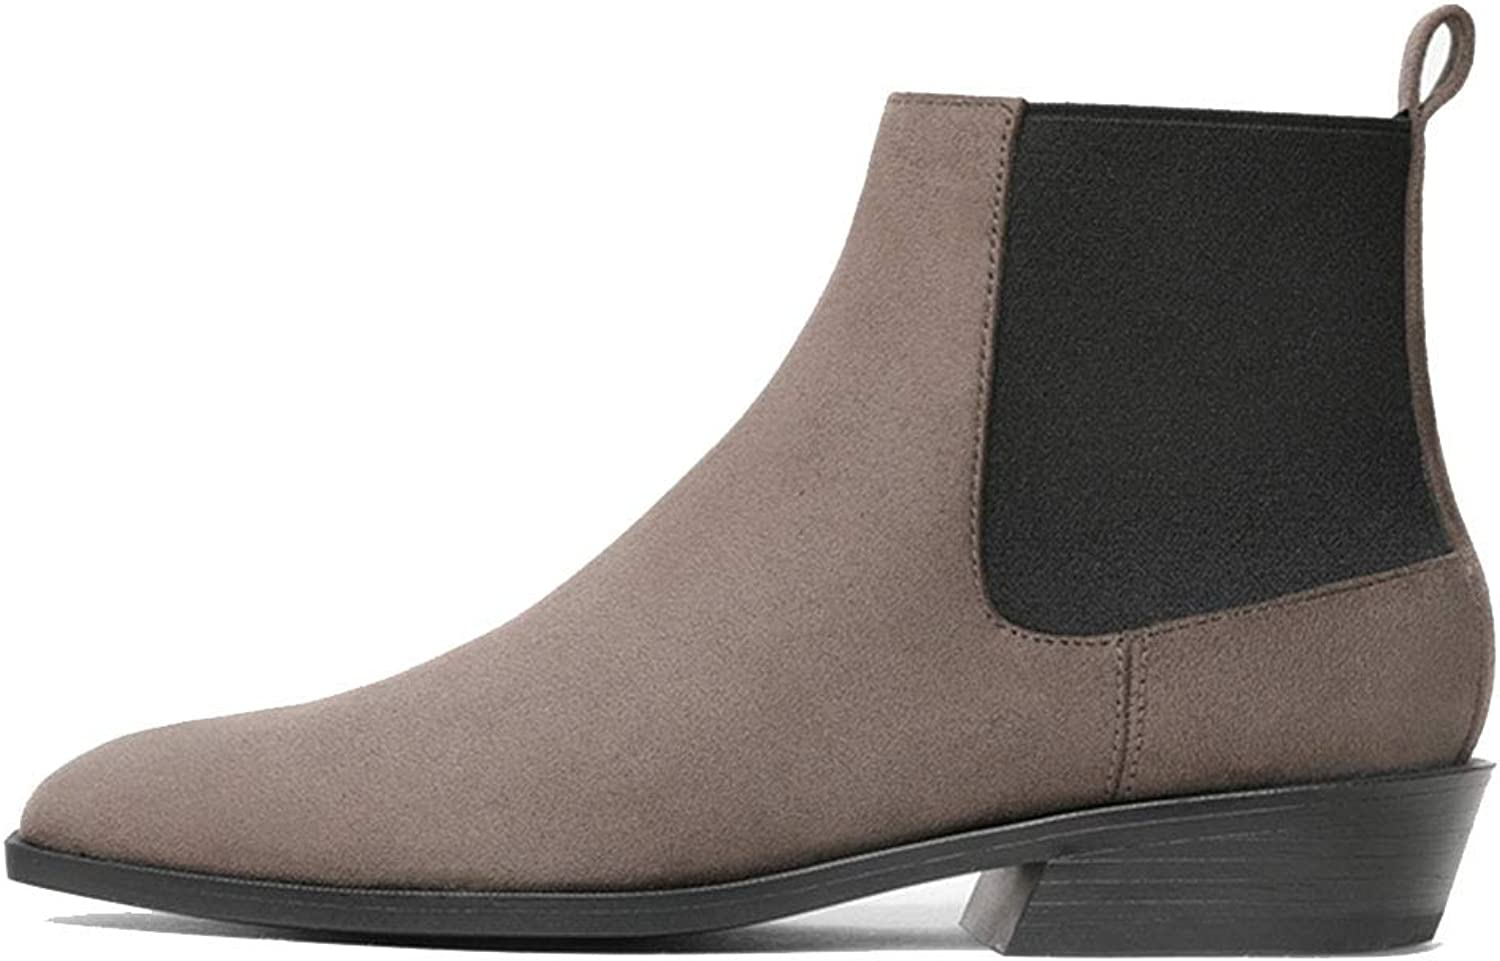 Flat Booties Women's Booties shoes Martin Boots Ankle Boots That fits All Your Clothes shoes (color   Brown, Size   38)